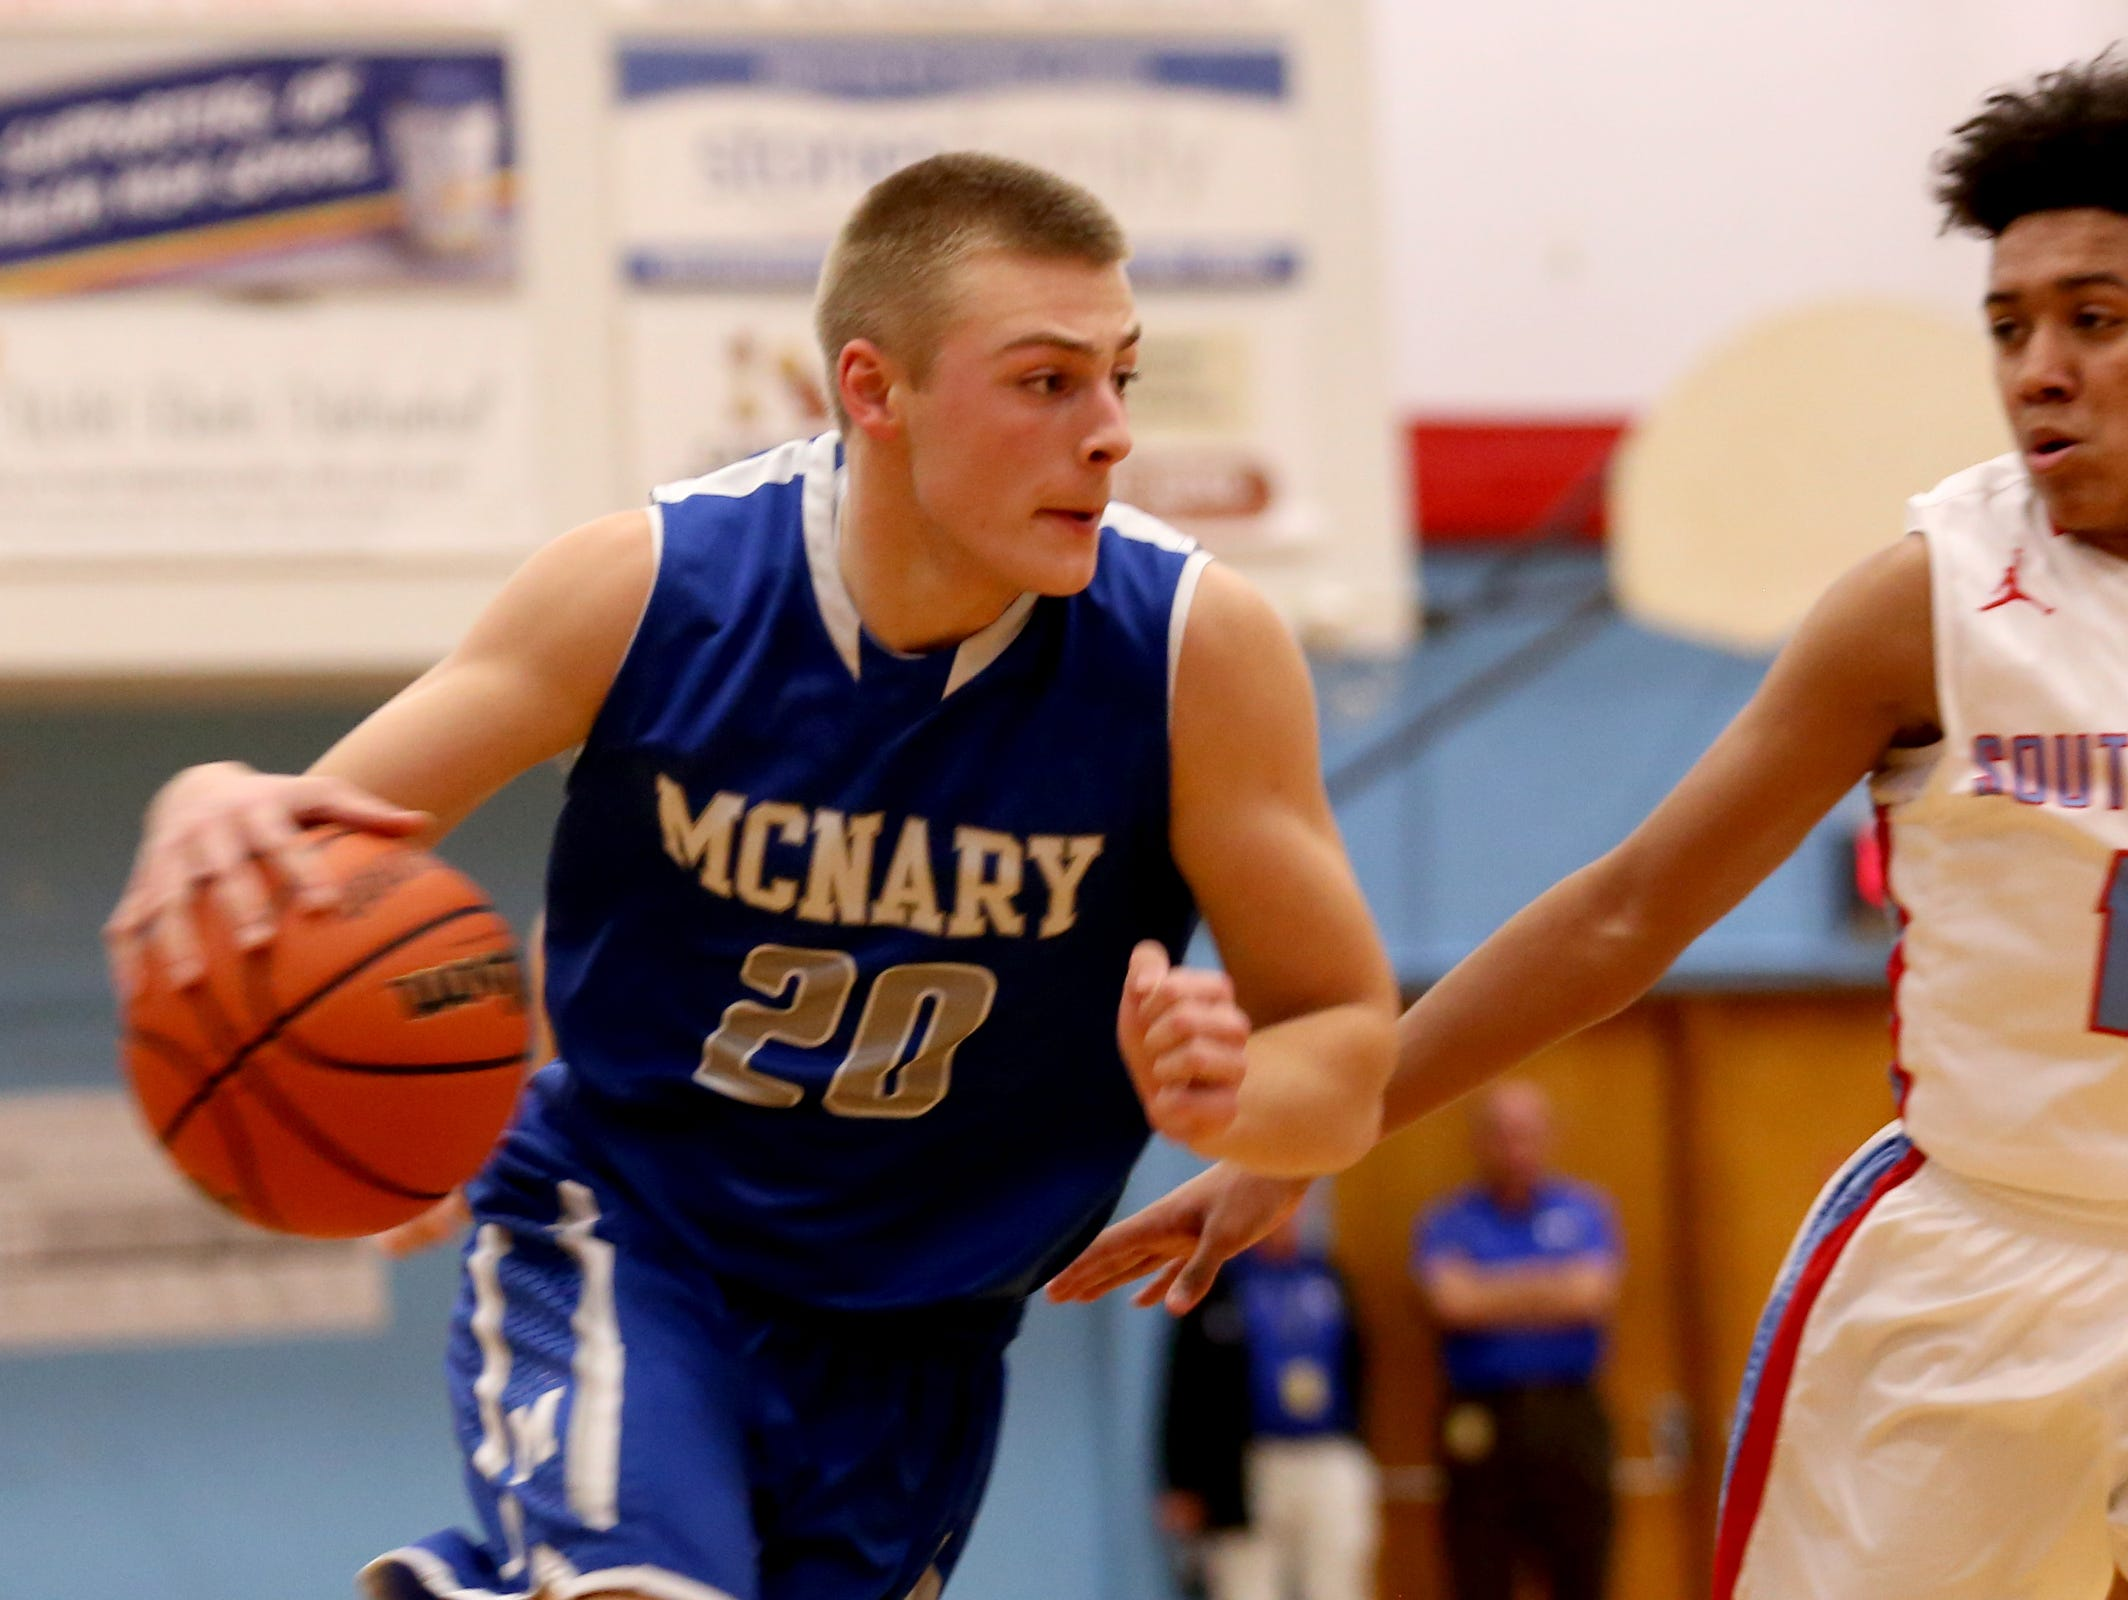 McNary's Cade Goff (left) is among the players who will compete in the Capitol City Classic this week.